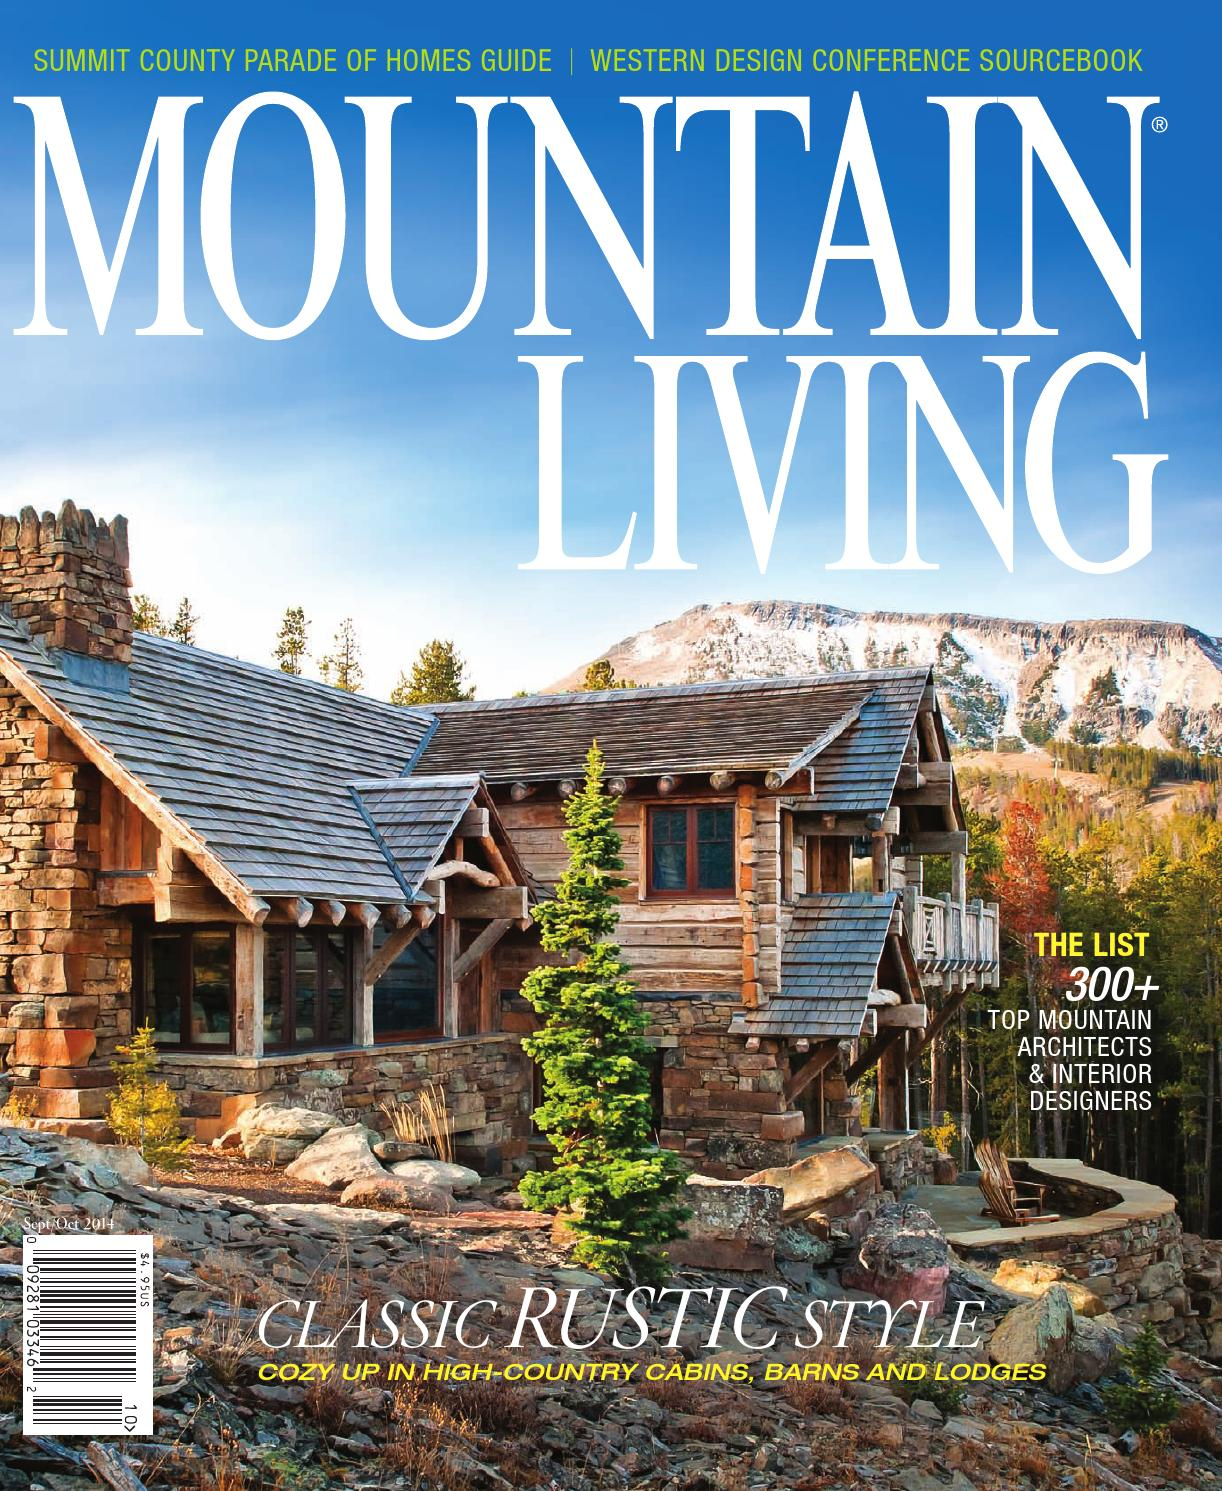 Issuu mountain living september october 2014 by network for Mountain living